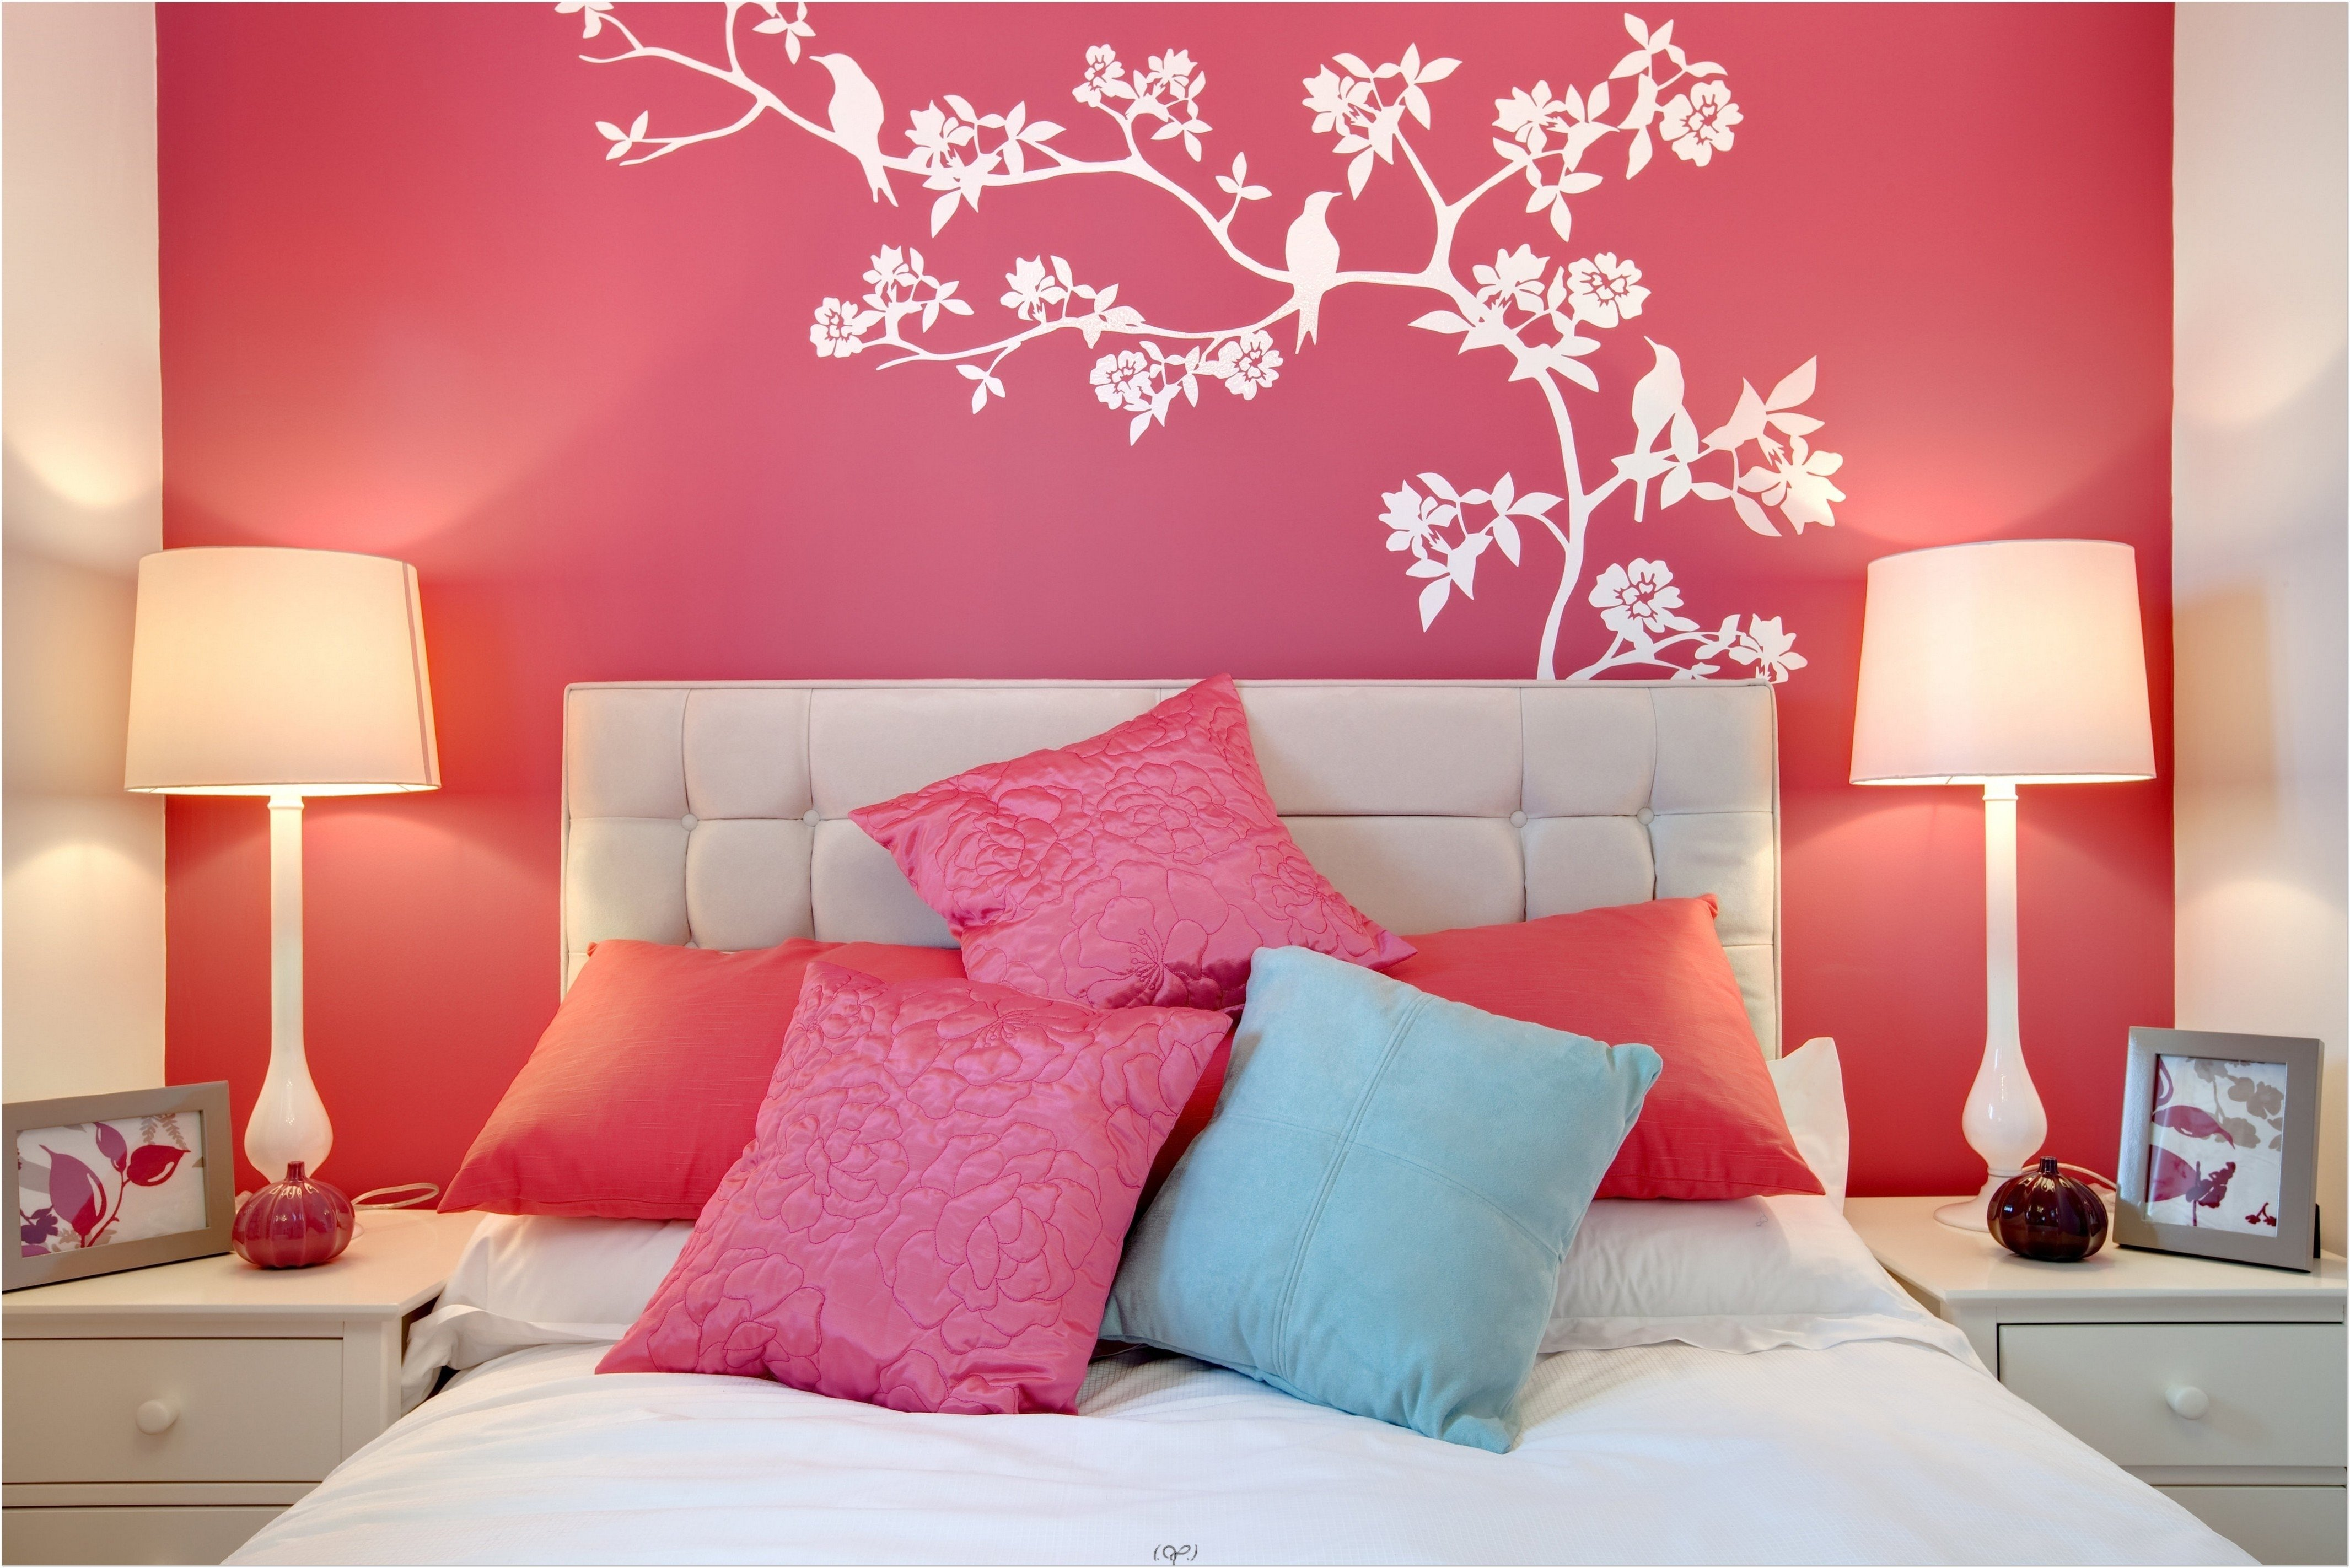 10 Fantastic Romantic Ideas For Couples At Home bedroom colour combinations photos romantic ideas for married 2020